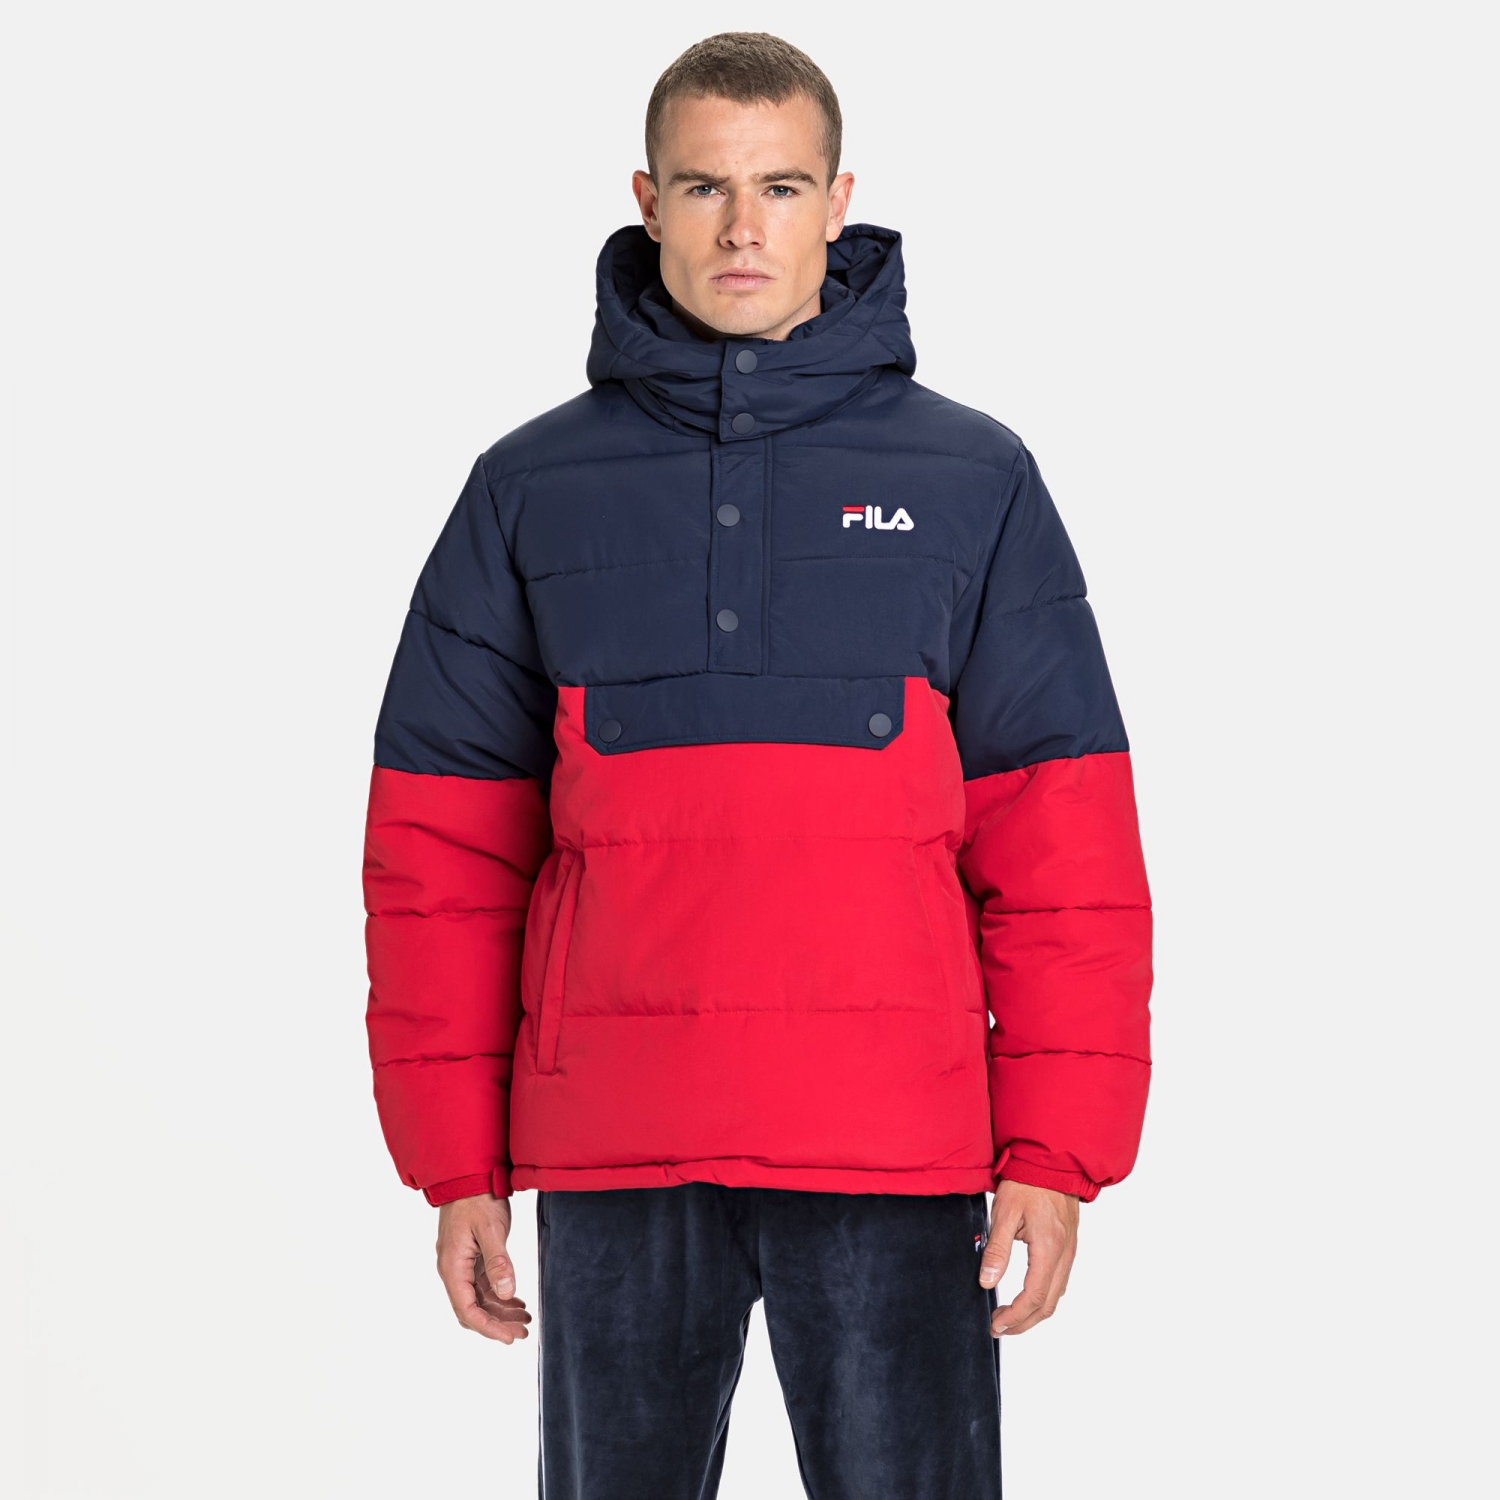 Fila Batul Blocked Puff Jacket Bild 1